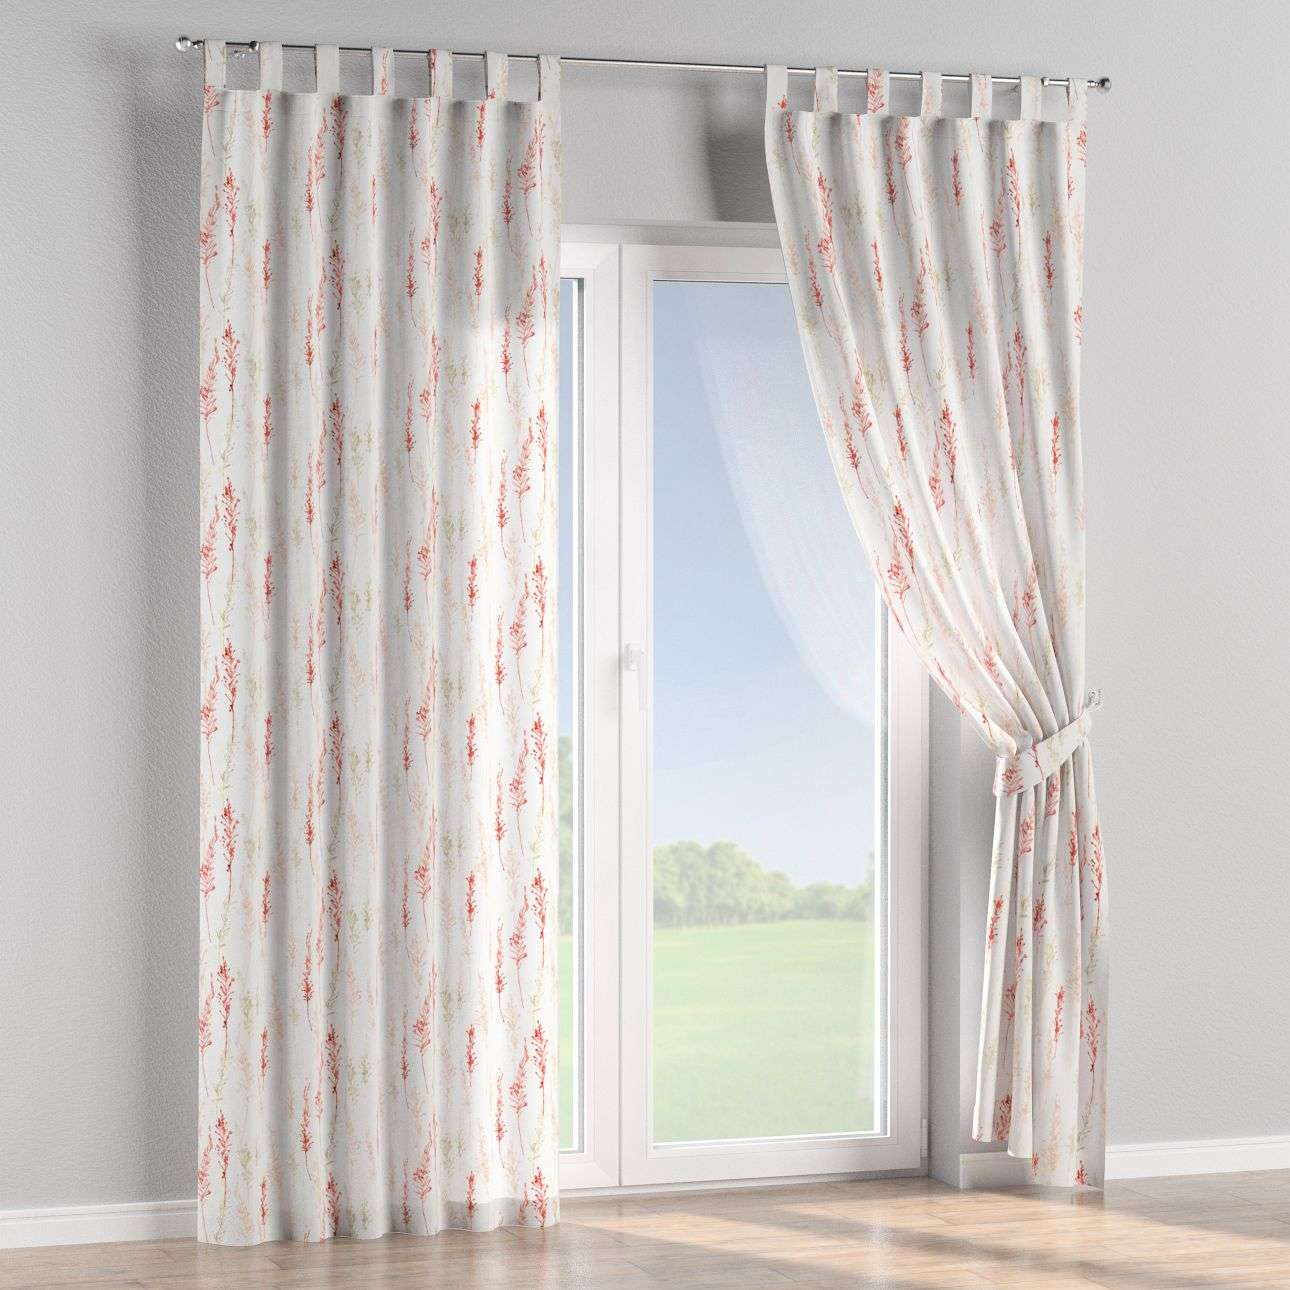 Tab top curtains 130 x 260 cm (51 x 102 inch) in collection Acapulco, fabric: 141-37